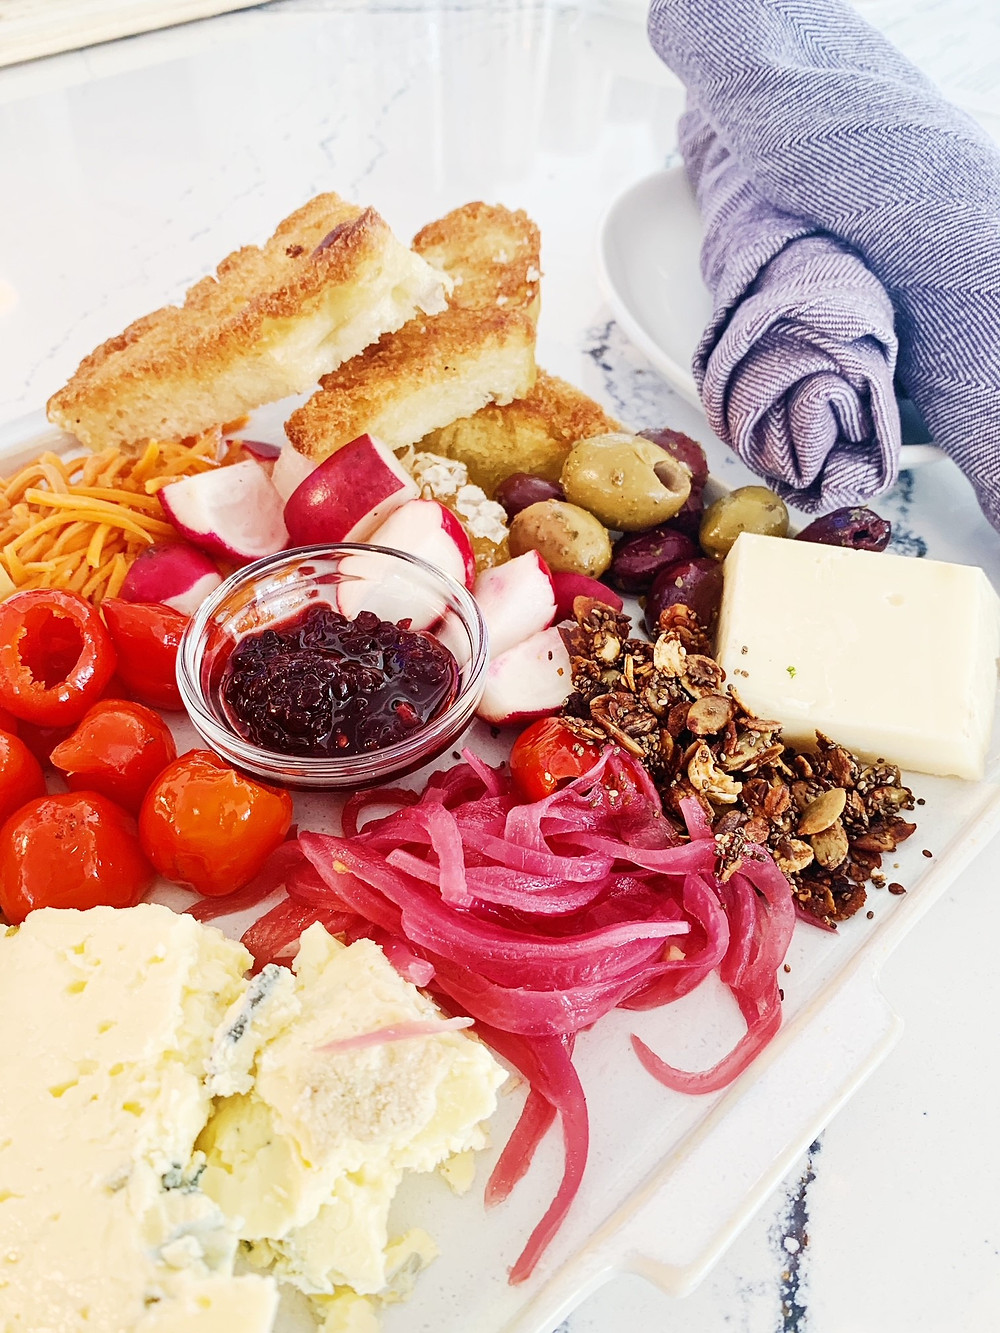 Artisanal Cheese Plate - The Citizen